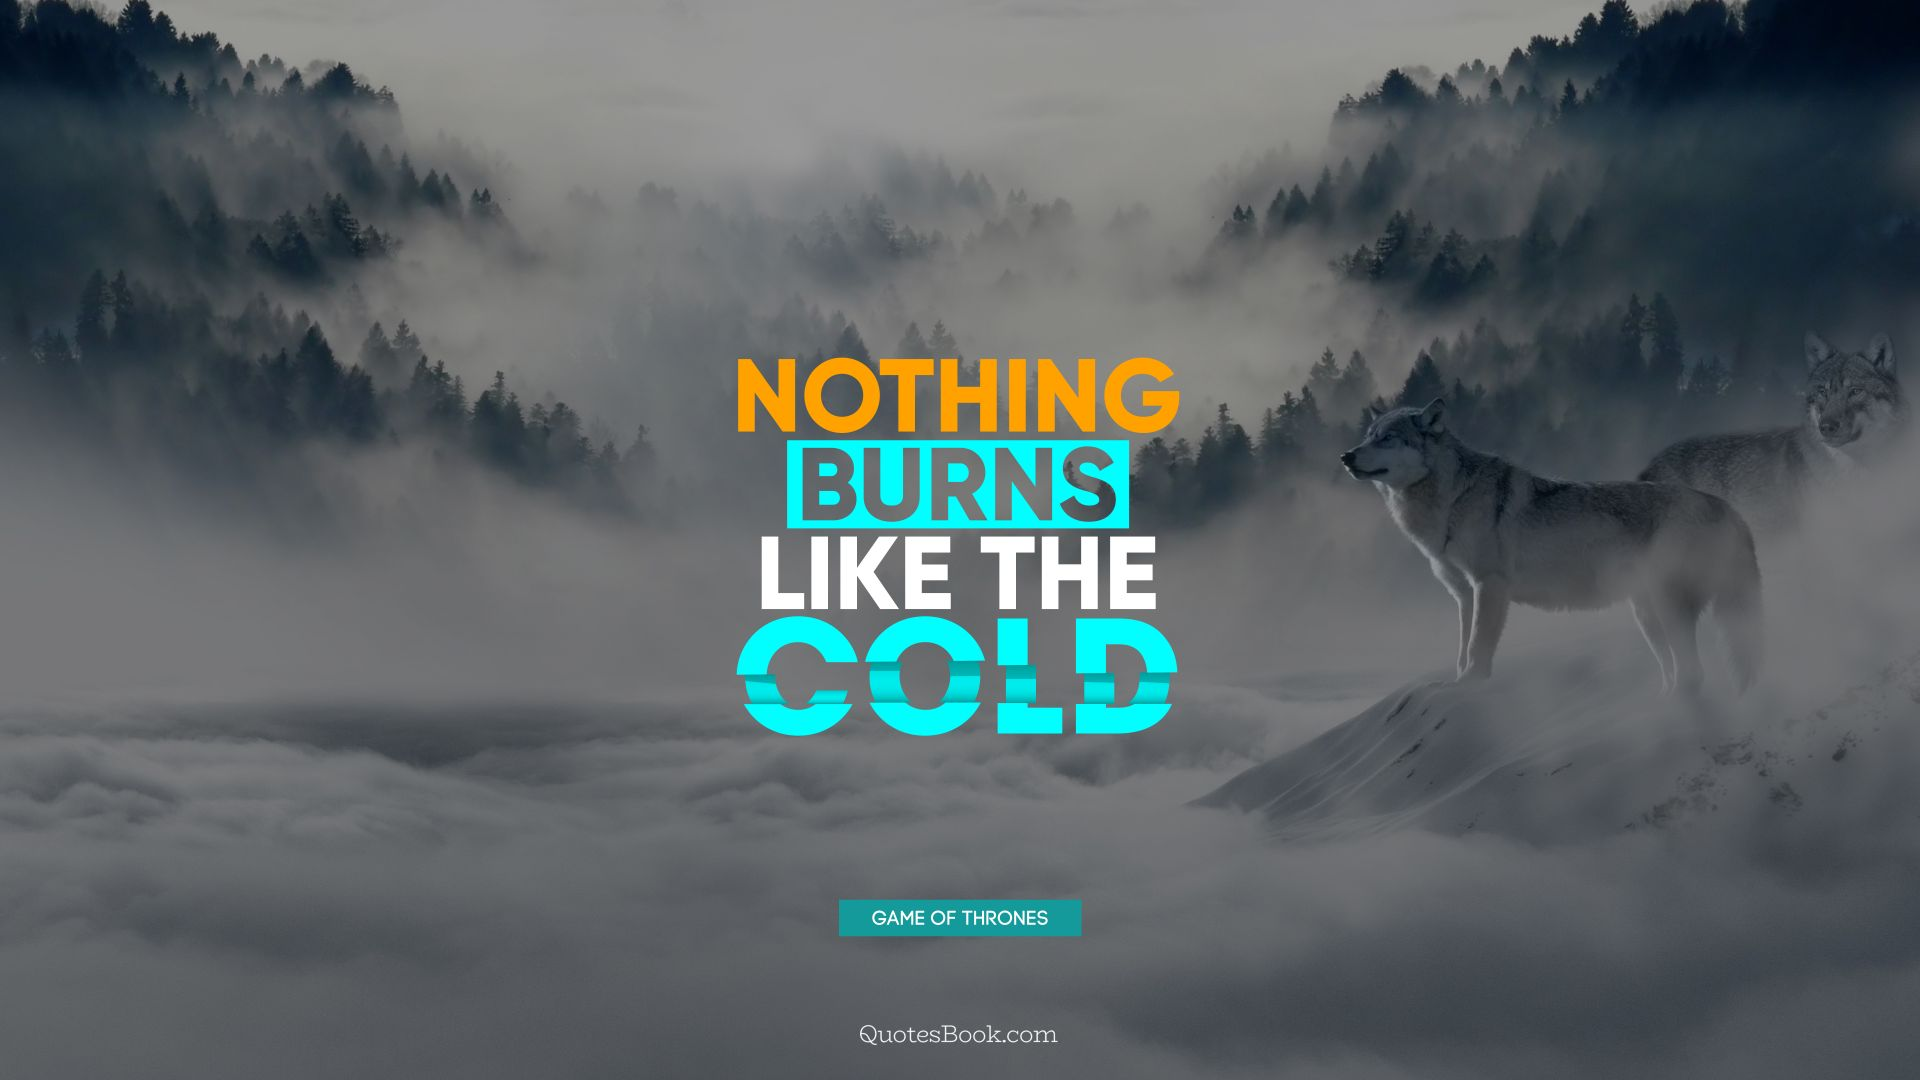 Nothing burns like the cold. - Quote by George R.R. Martin